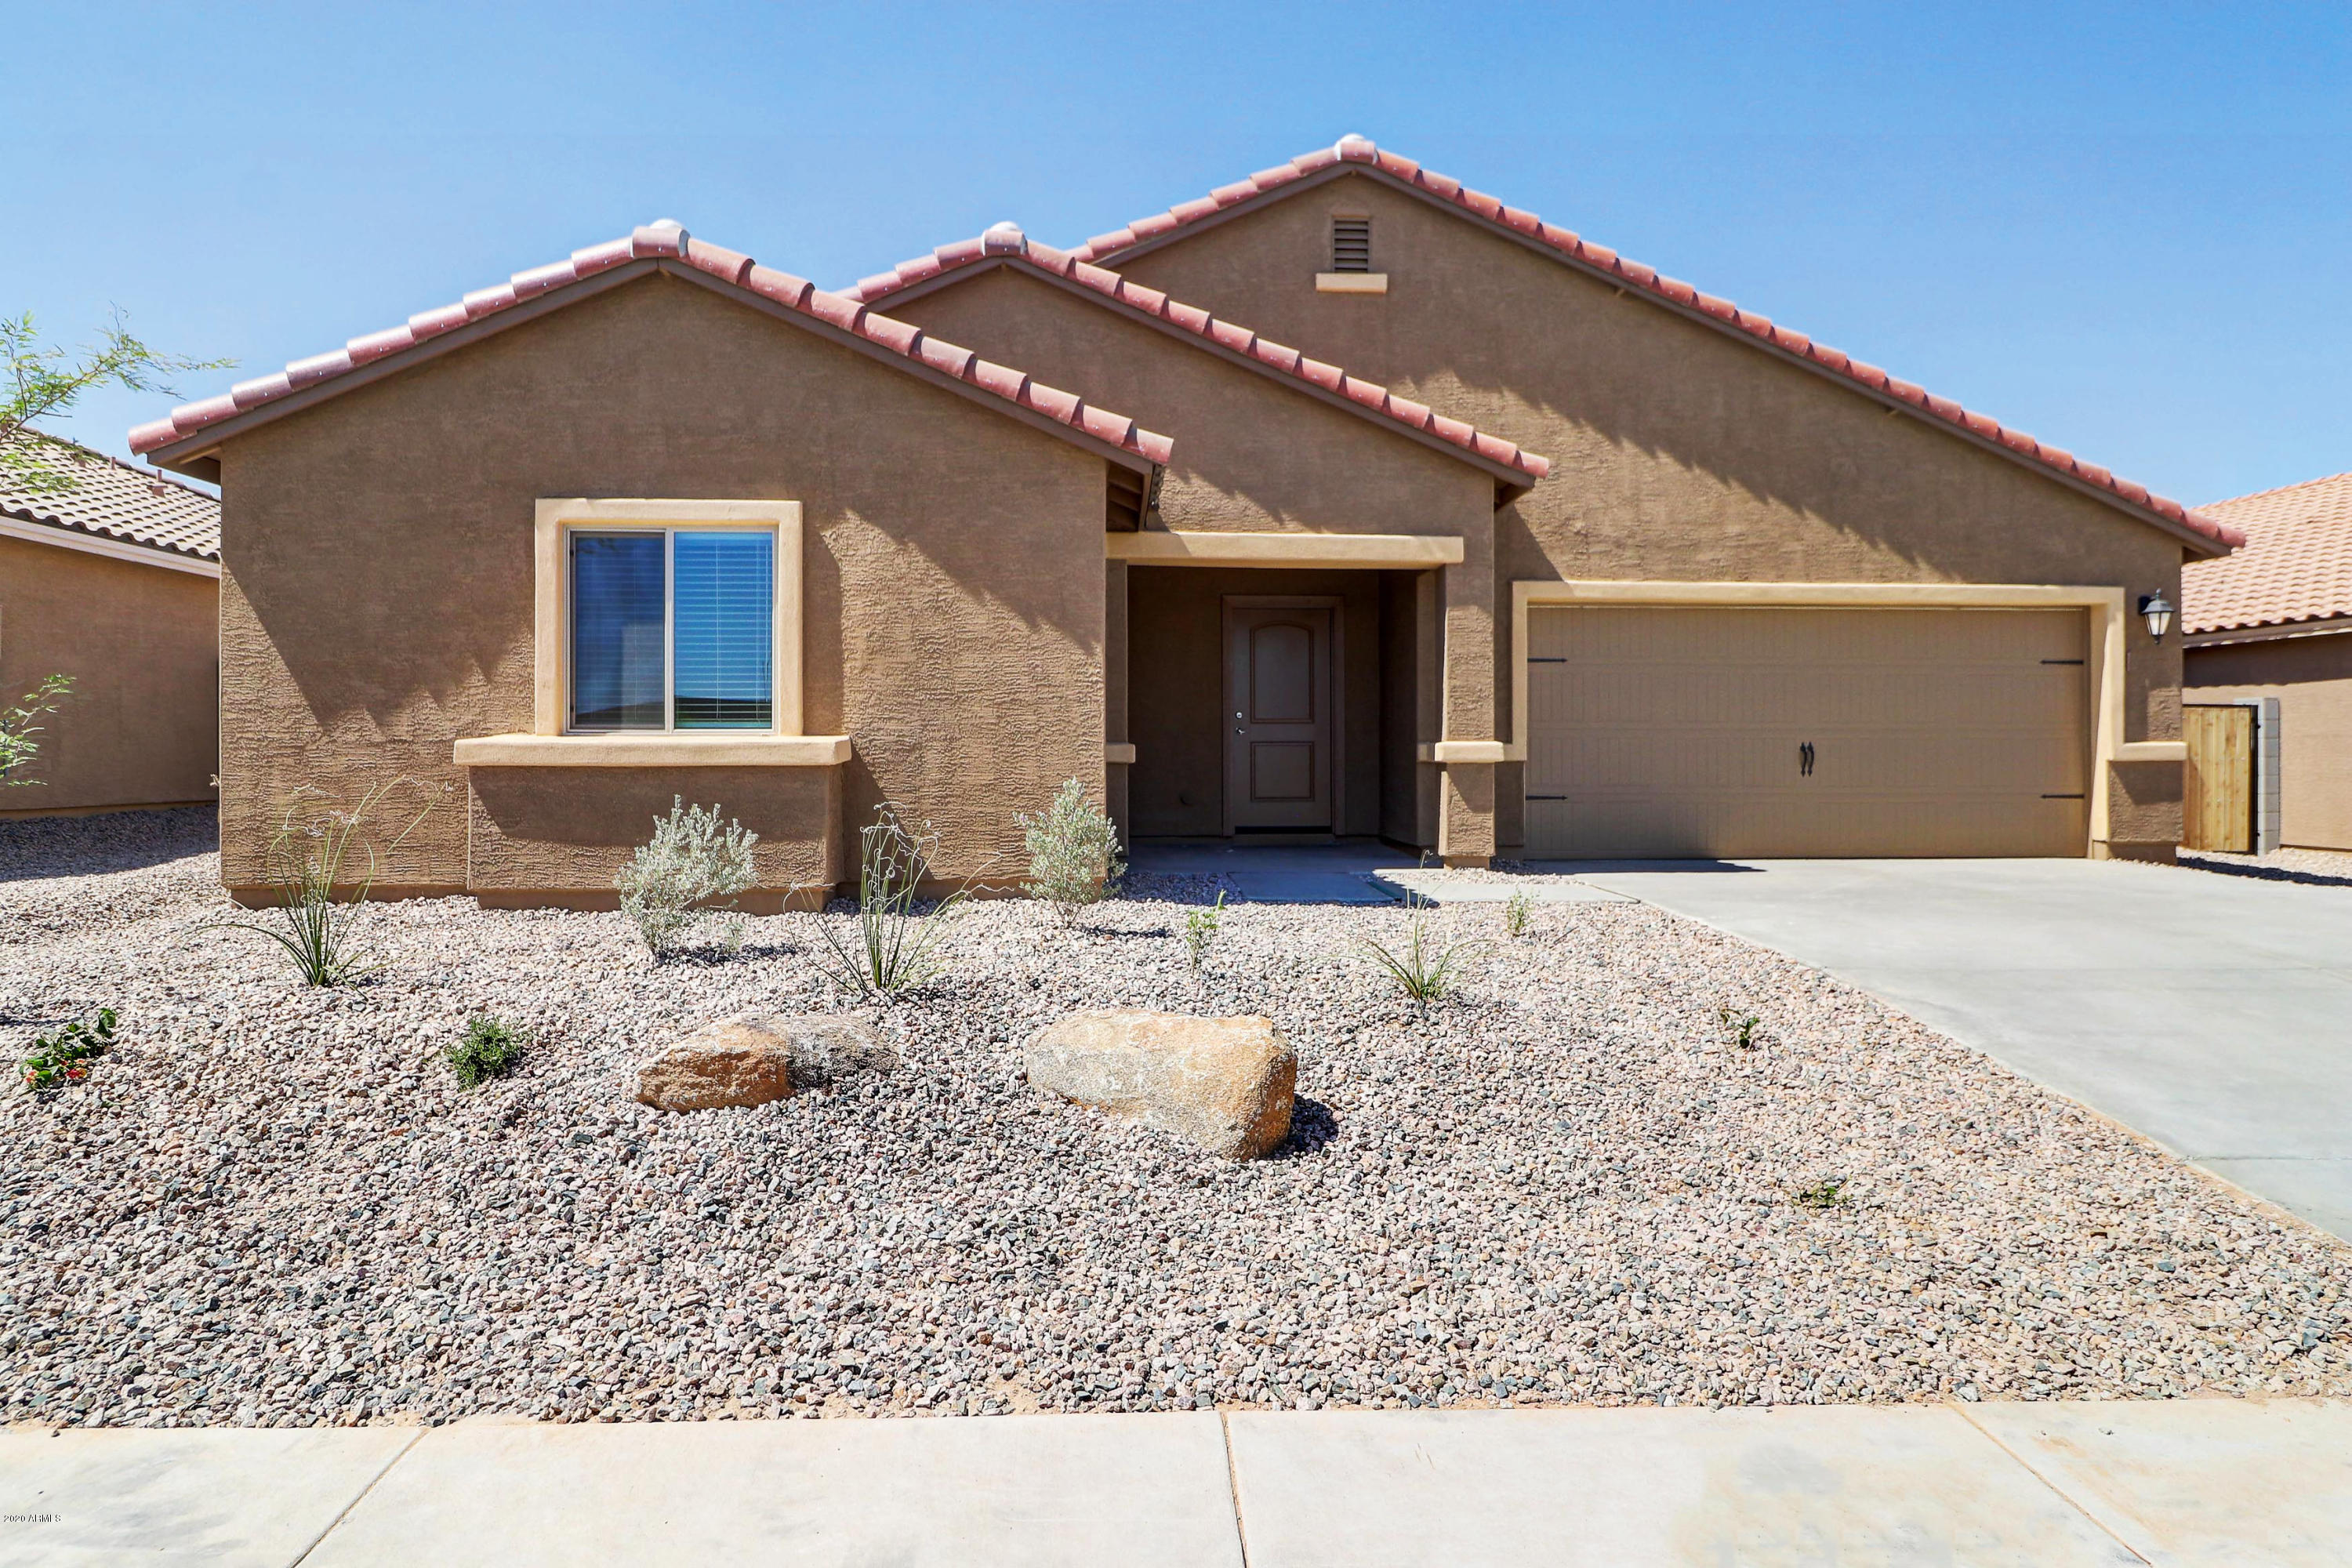 Photo of 577 W PINTAIL Drive, Casa Grande, AZ 85122